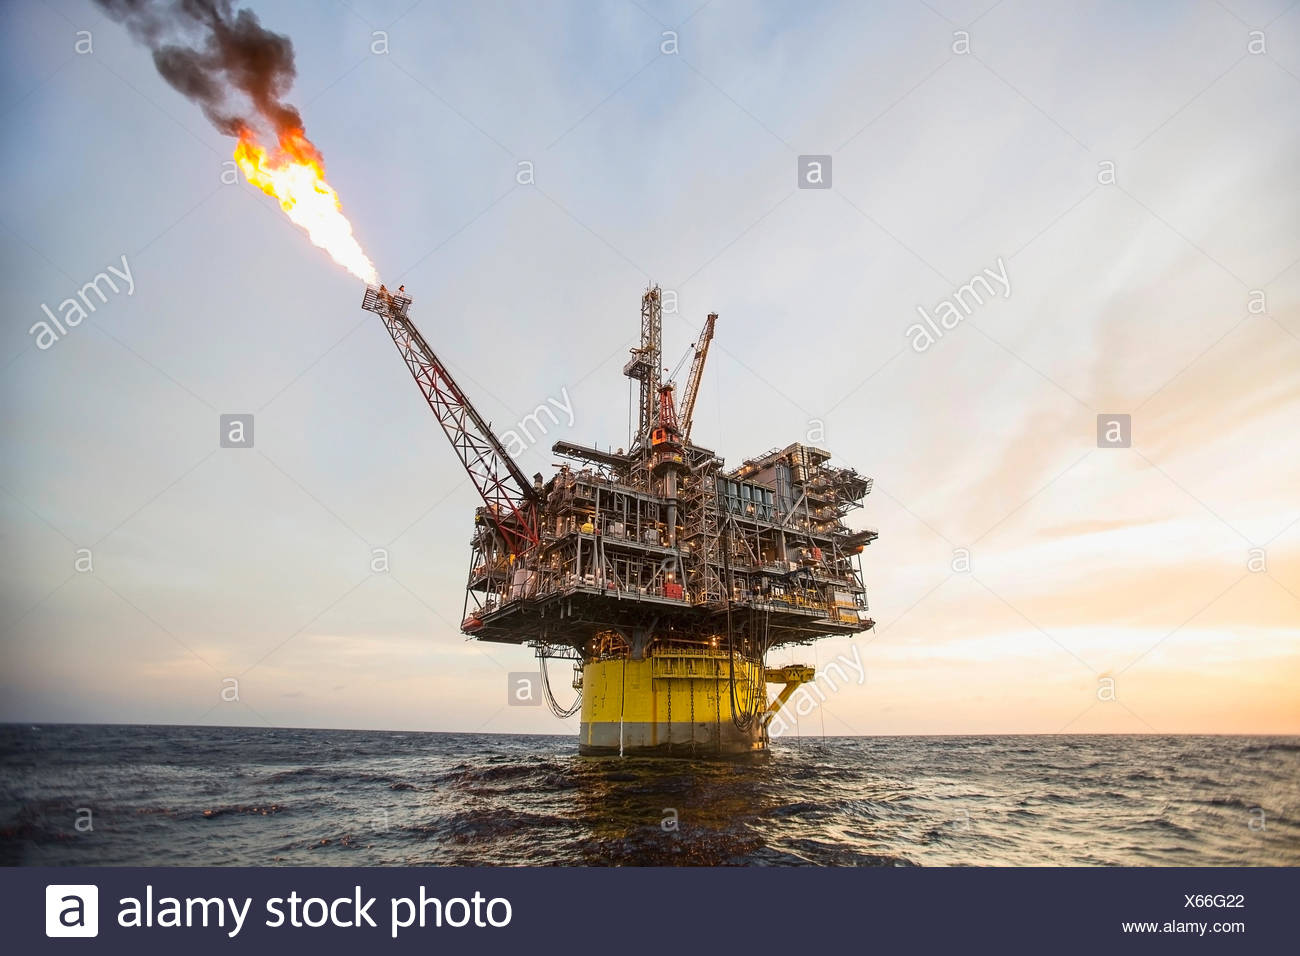 Flame coming off perdido oil rig in gulf of mexico